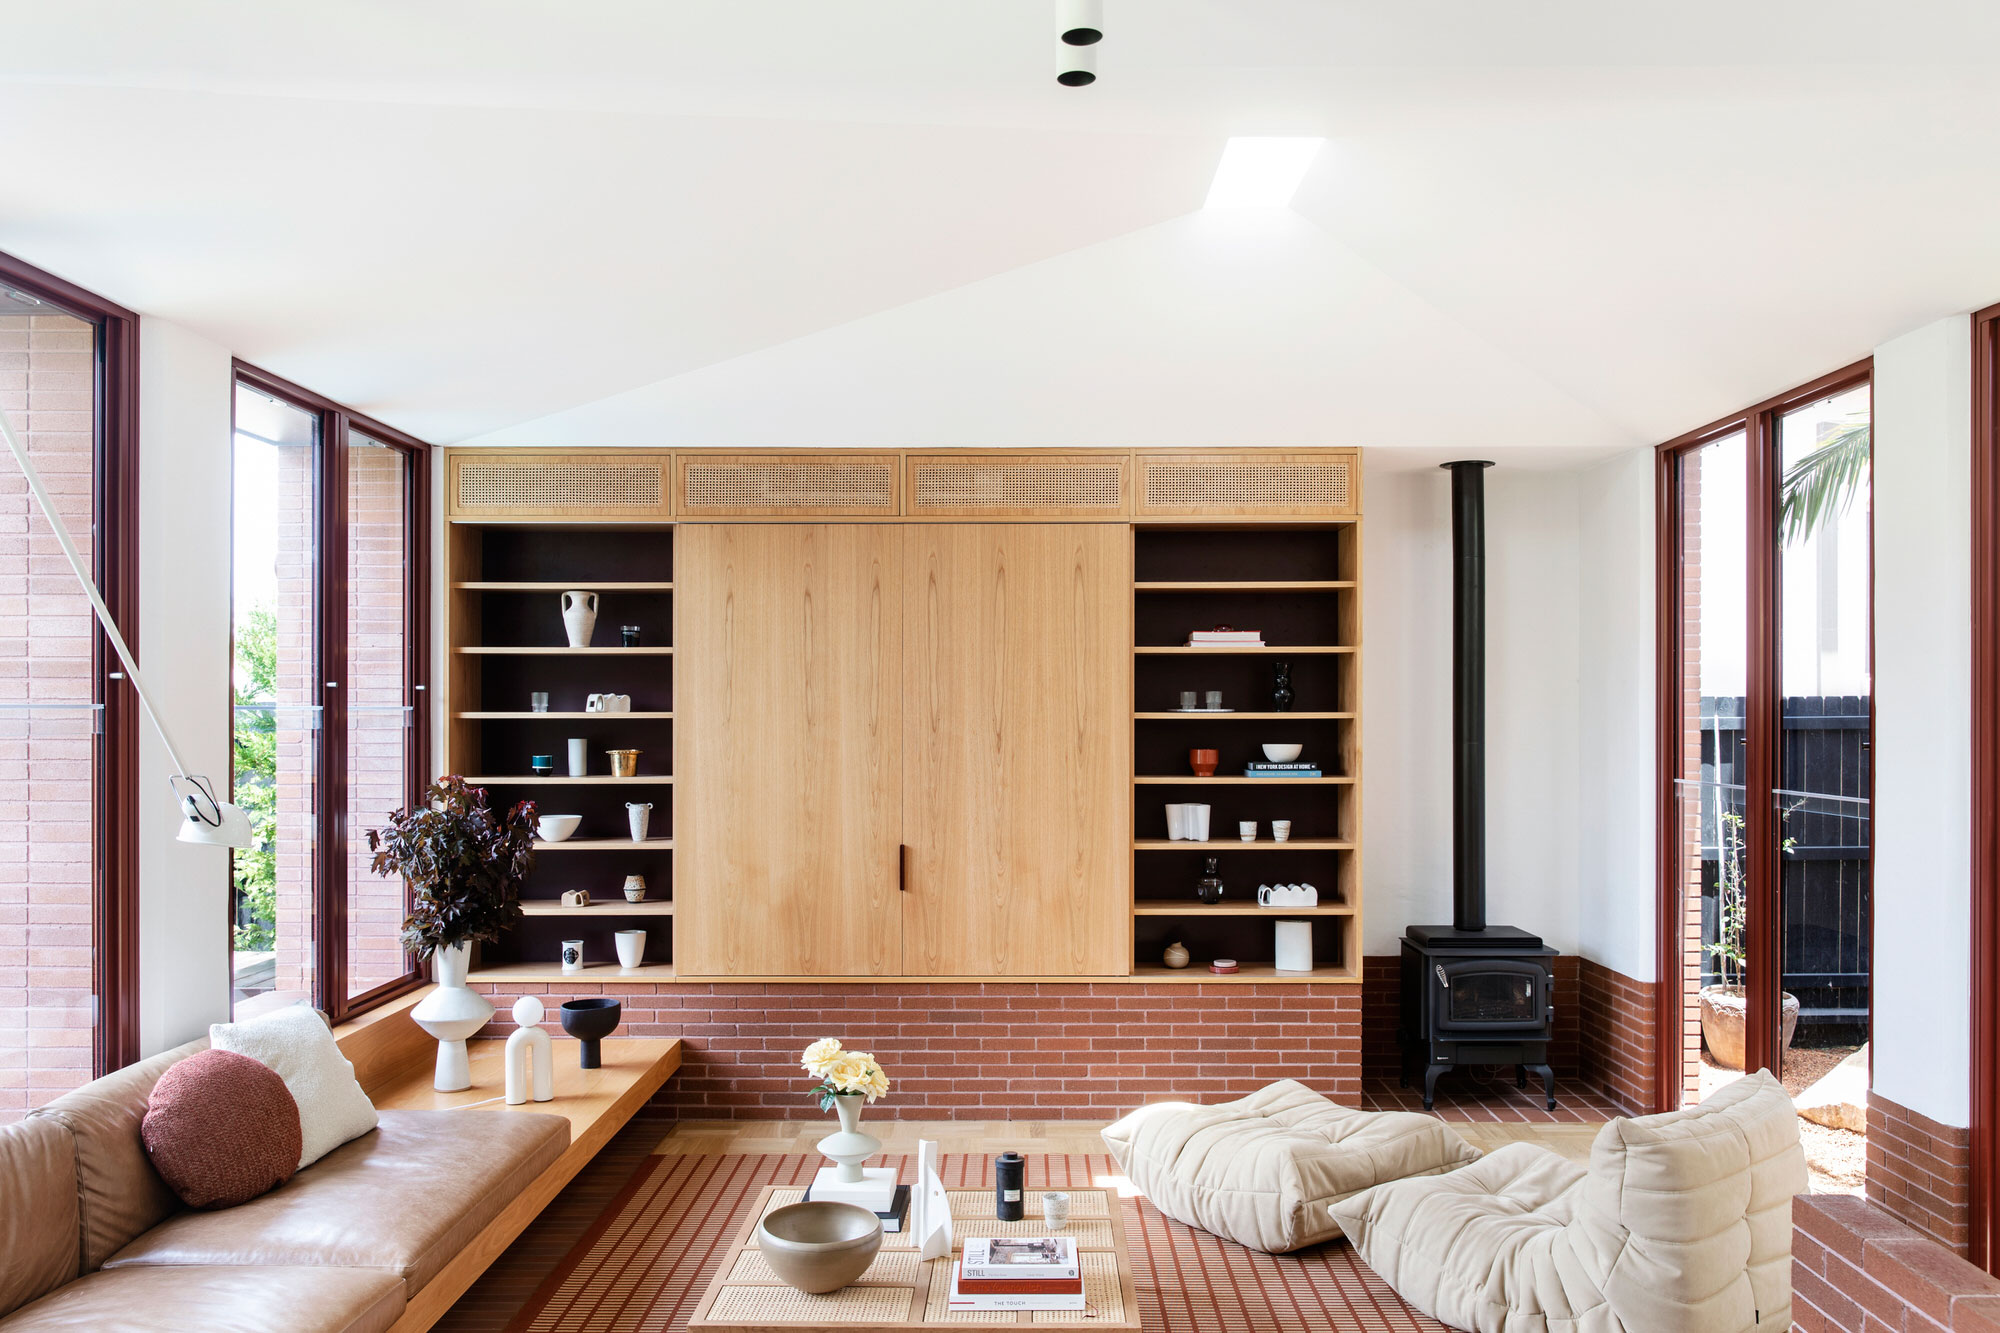 Studio Prineas, Bona Vista House Renovation Sydney, Photo Chris Warnes | Yellowtrace